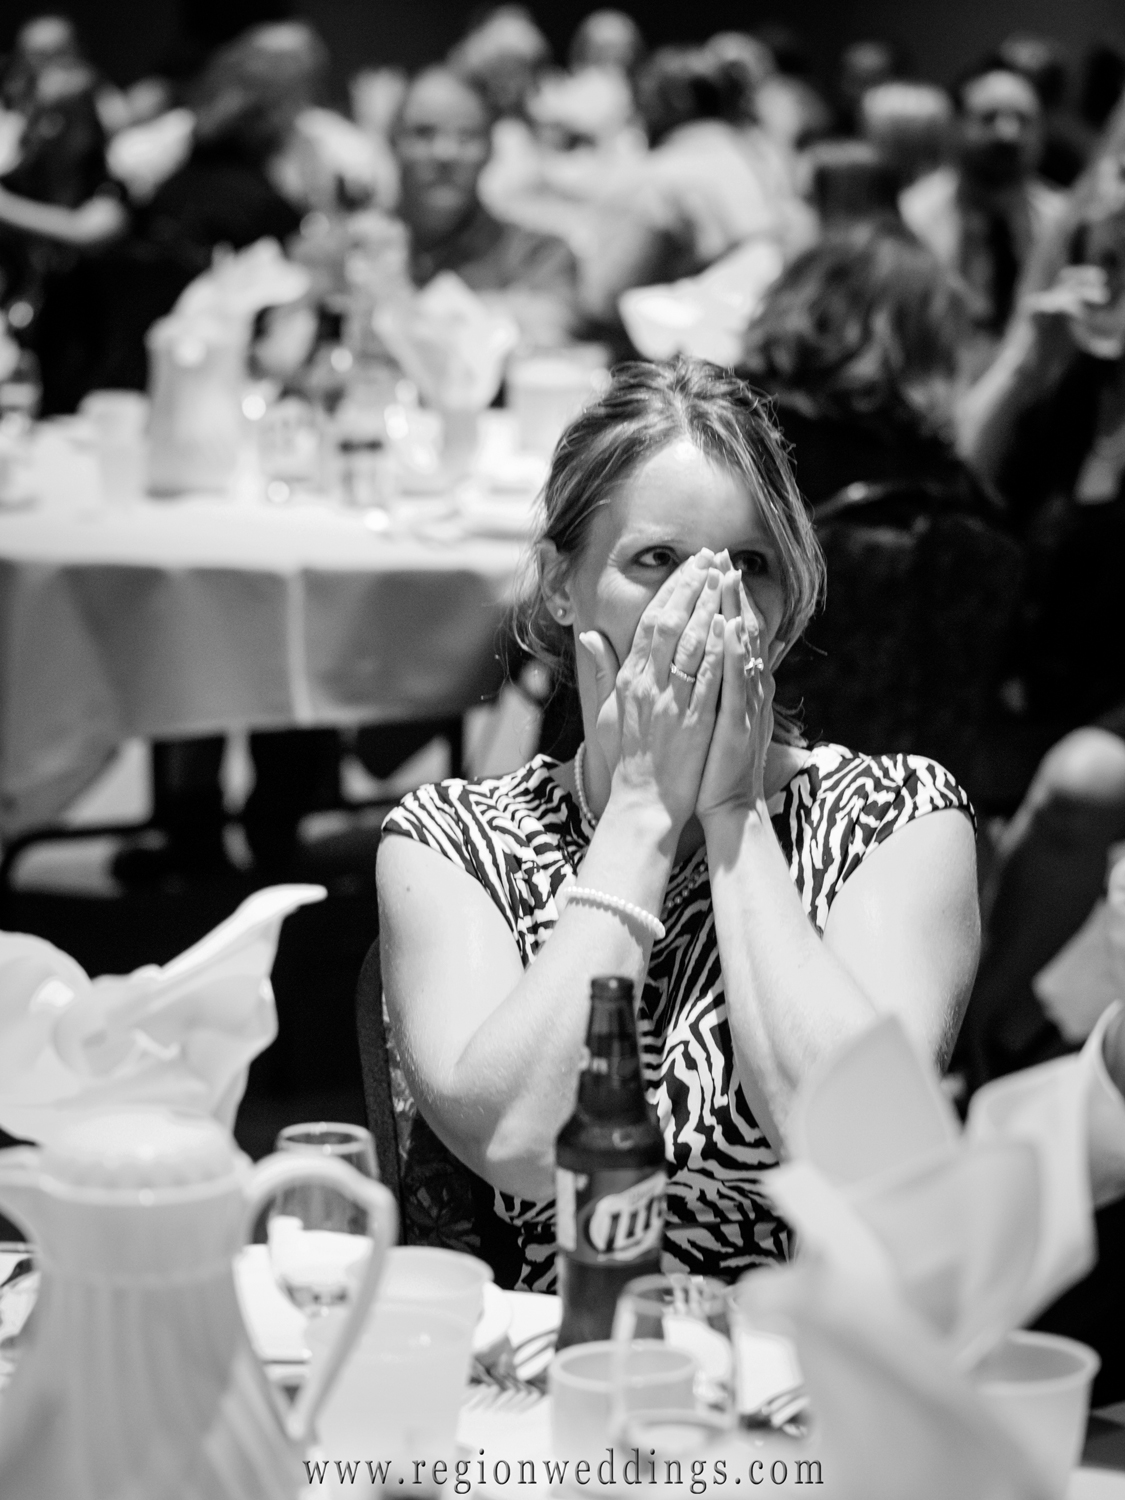 A wedding guest face-palms her laughter at one of the speeches given at the reception.